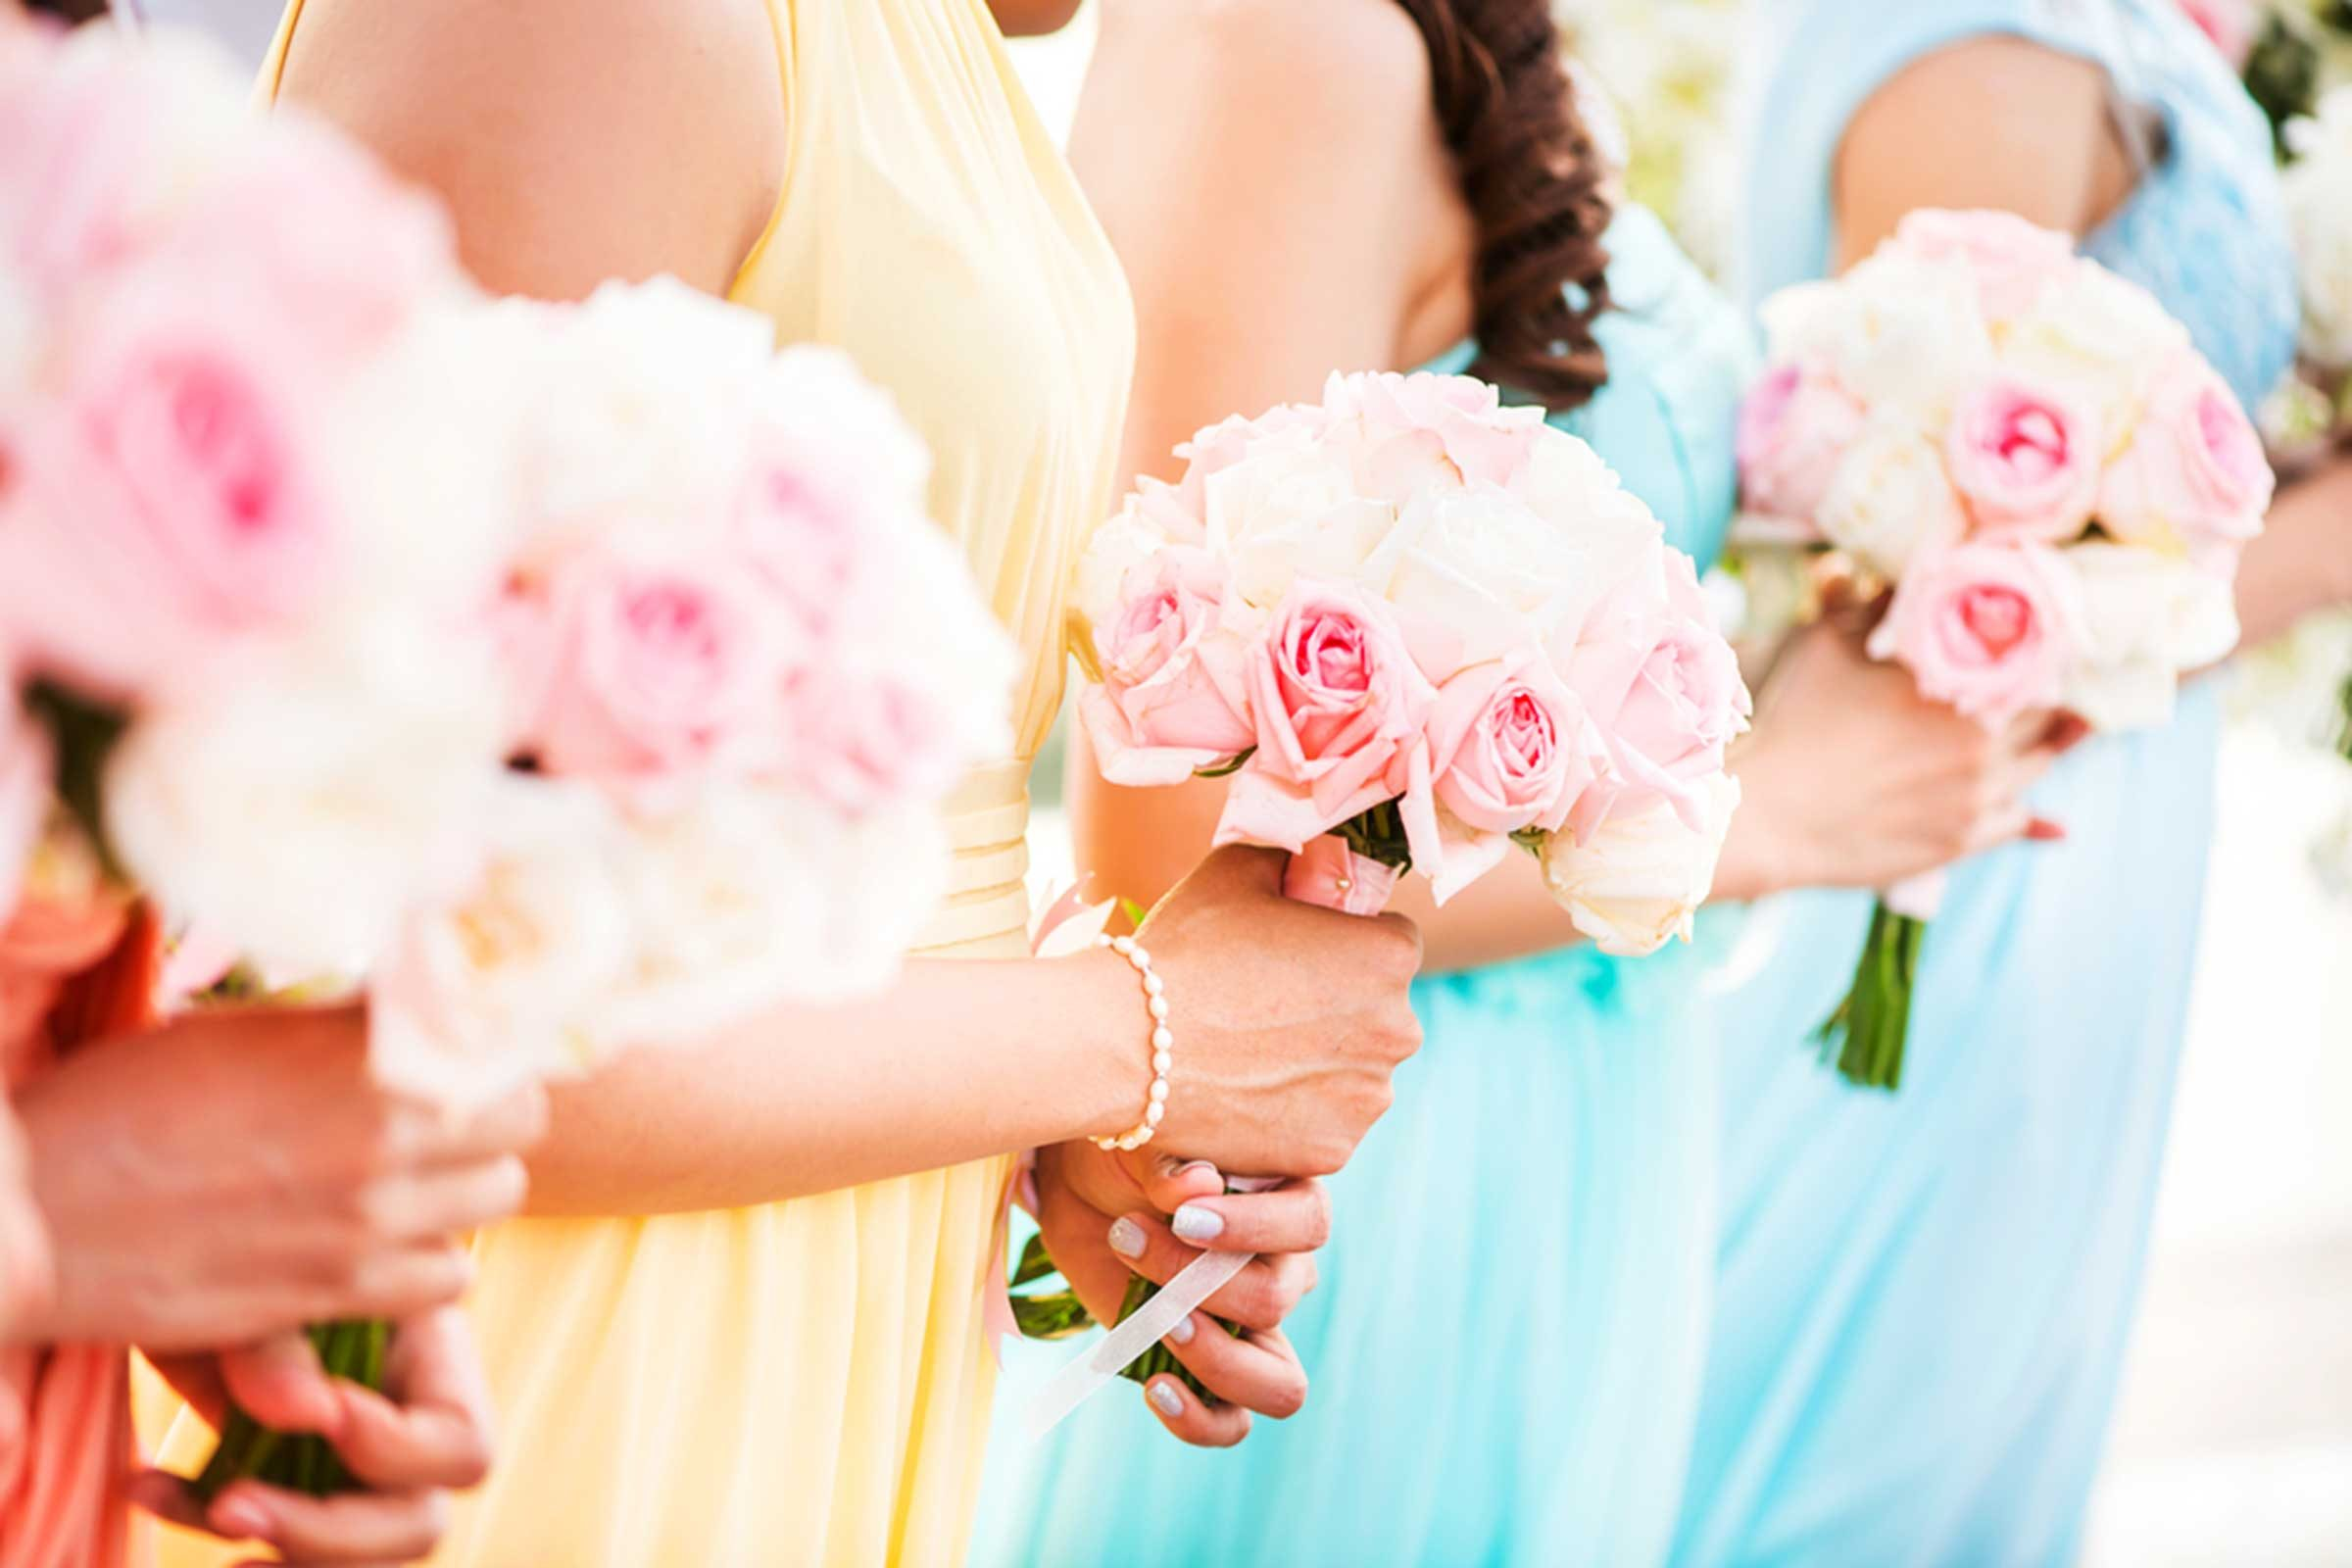 Things You Should Never Post About Your Wedding | Reader's Digest